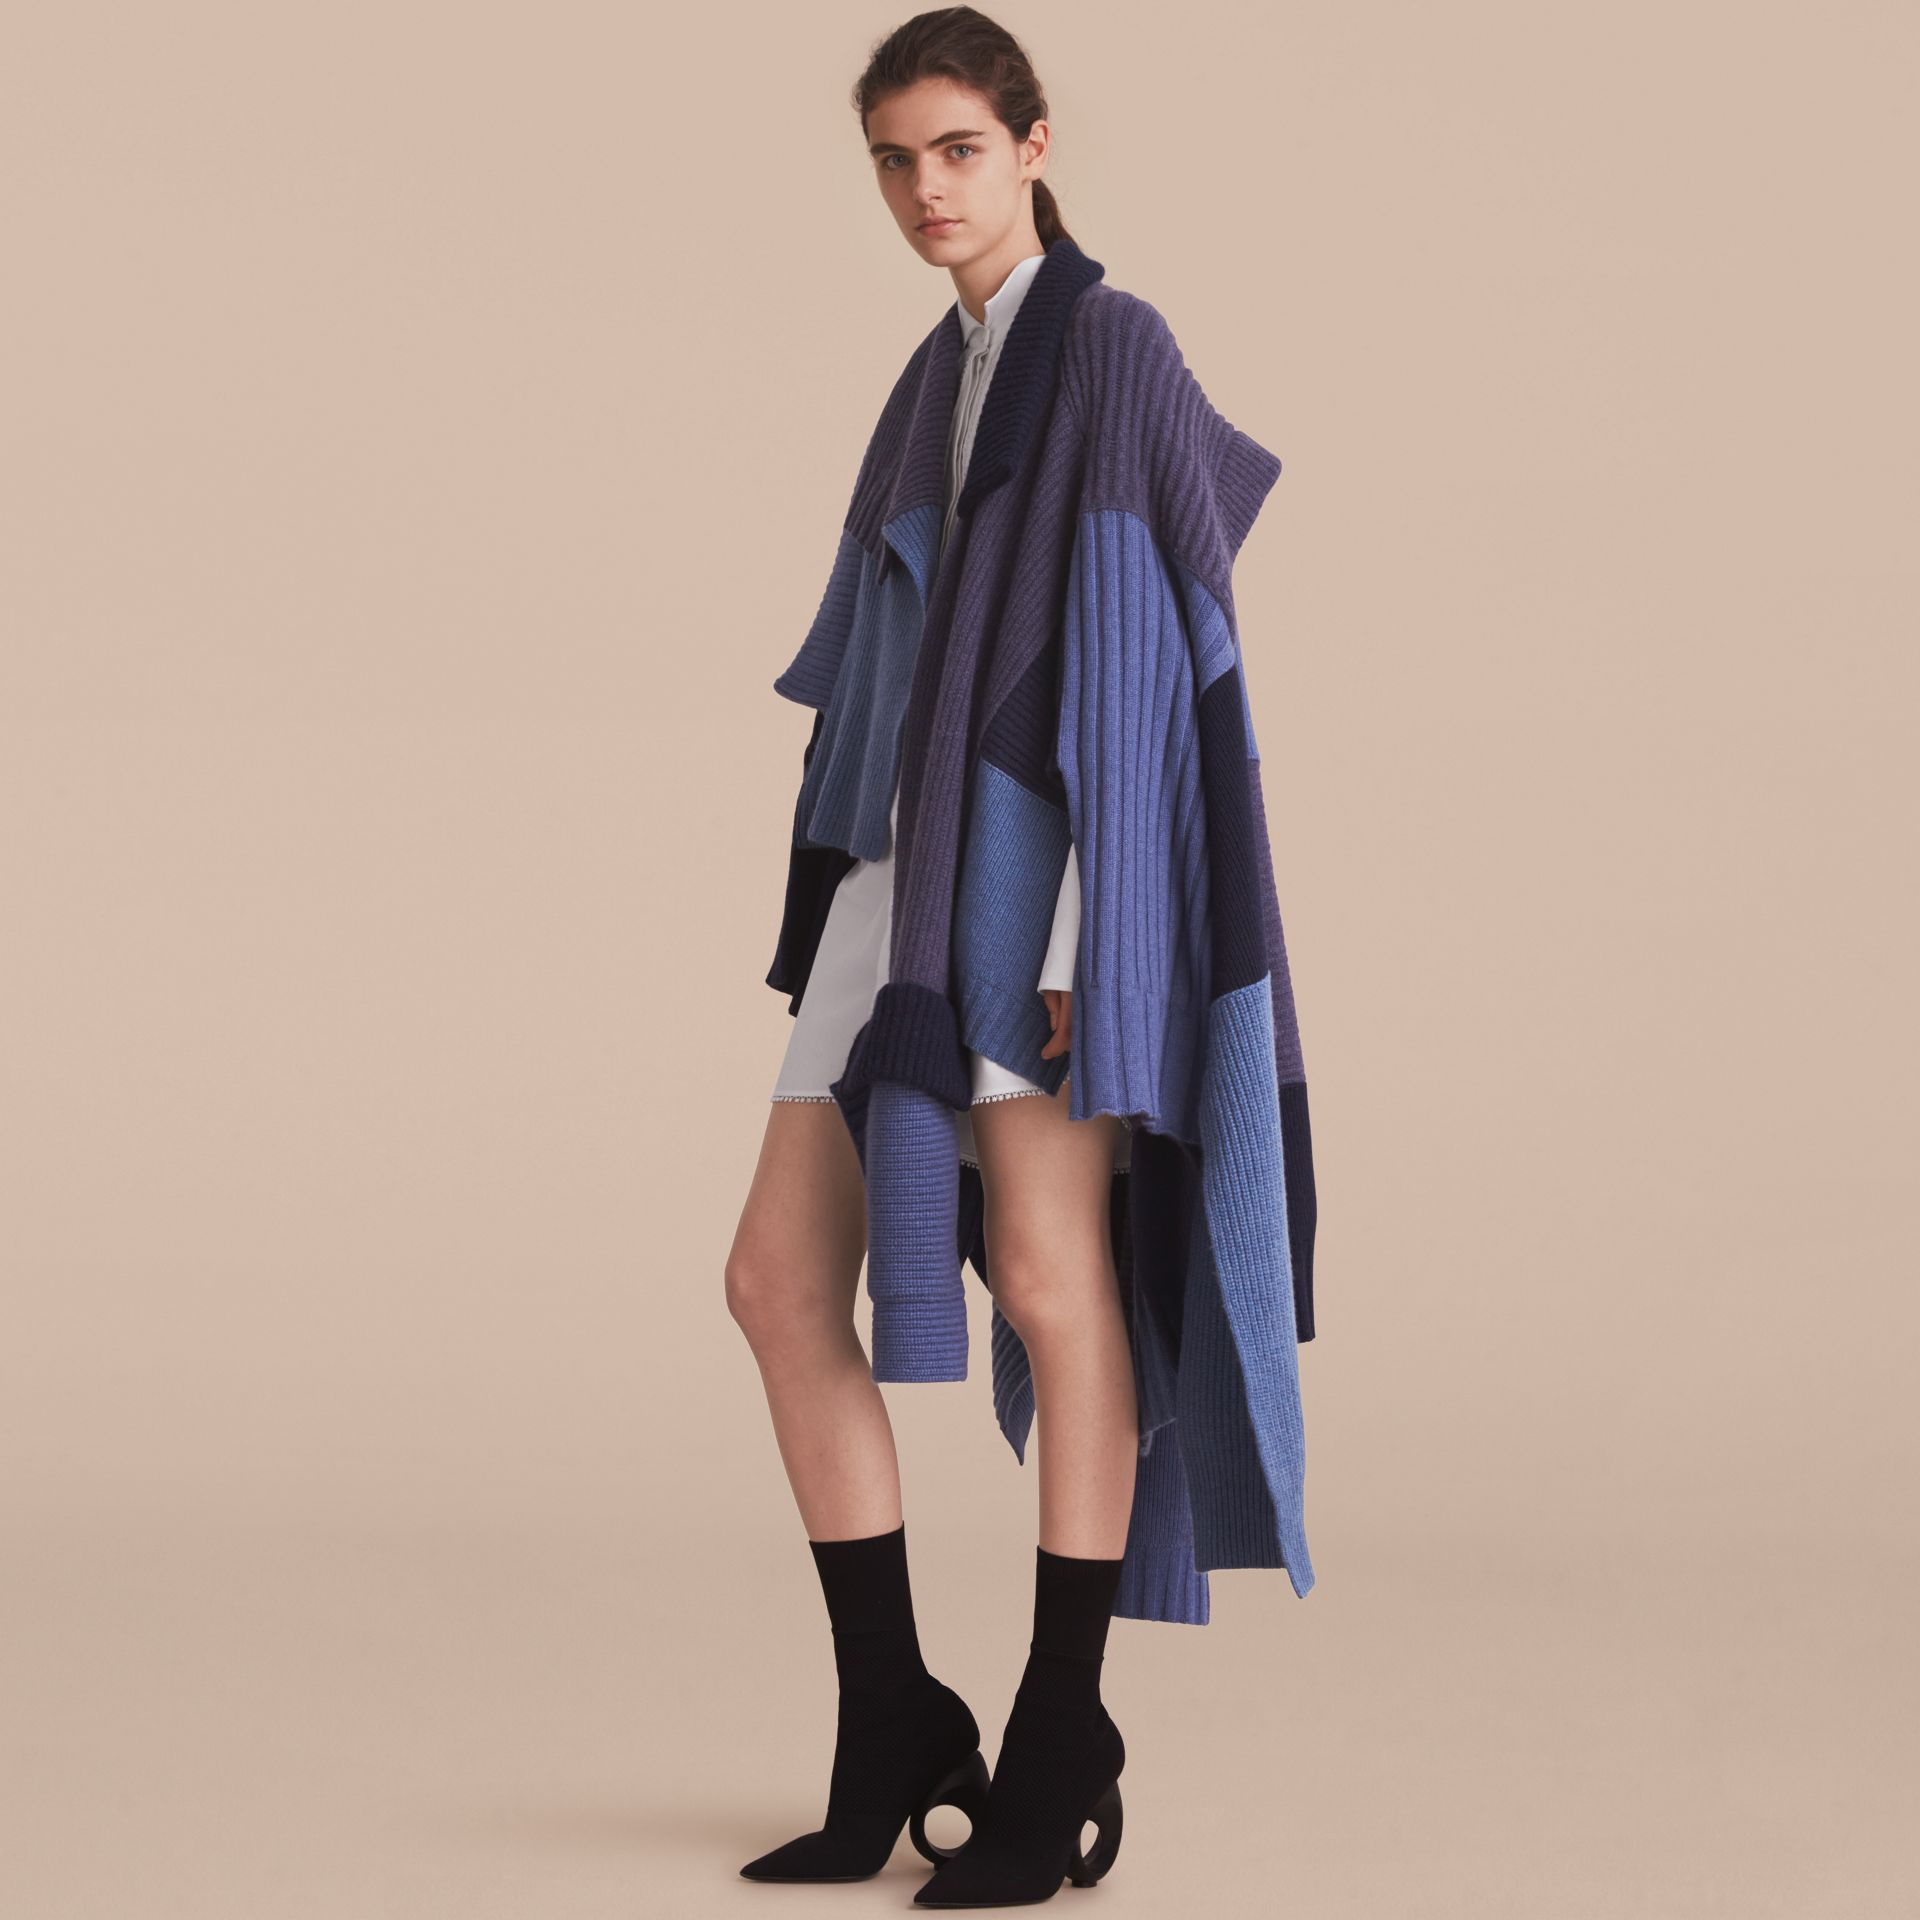 Wool Cashmere Patchwork Poncho in Carbon Blue - Women | Burberry Singapore - gallery image 6